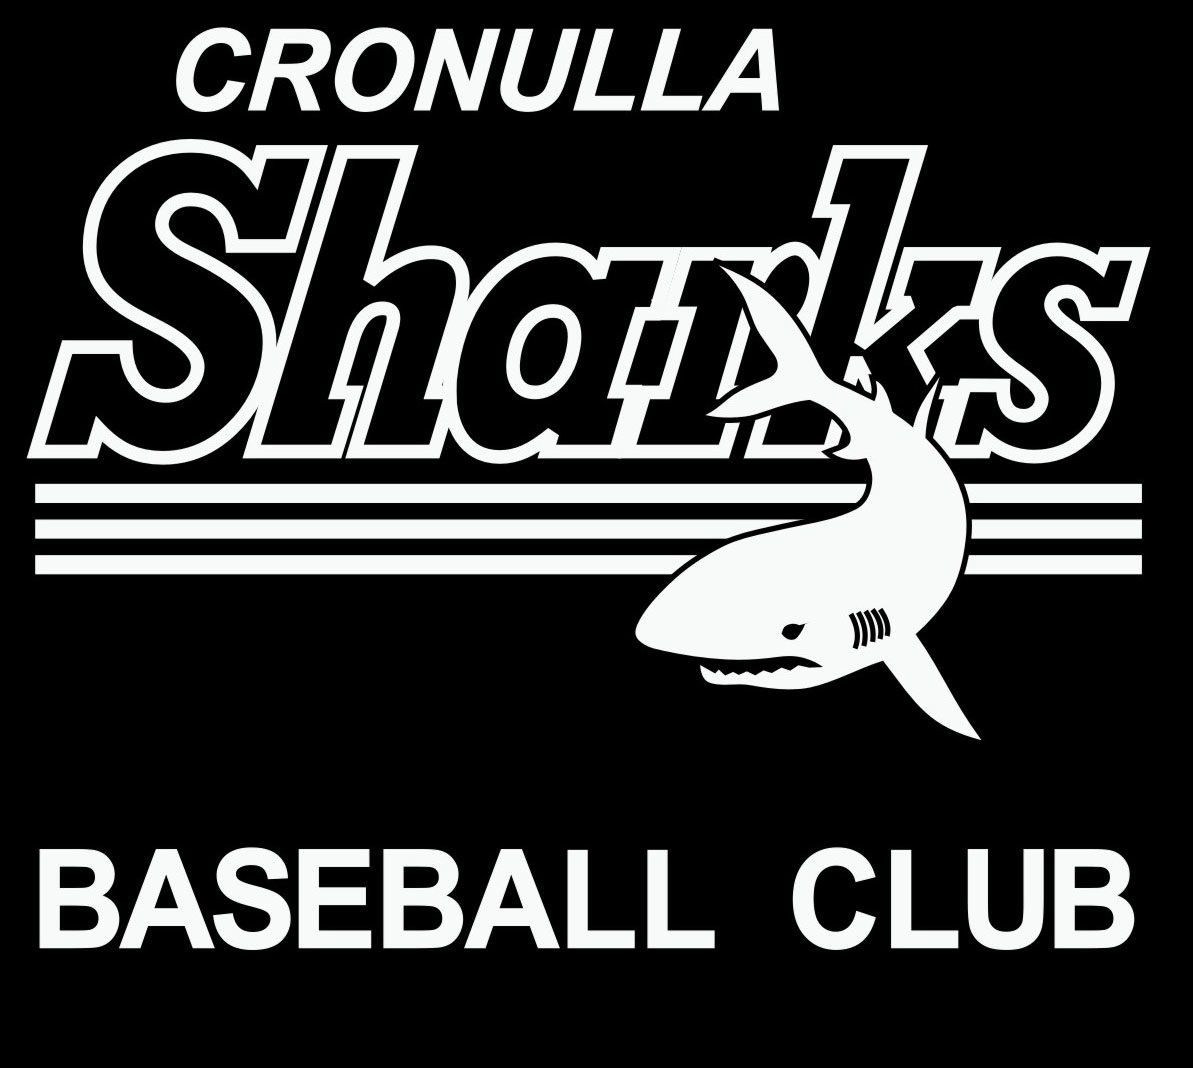 Cronulla Sharks Baseball Club Logo